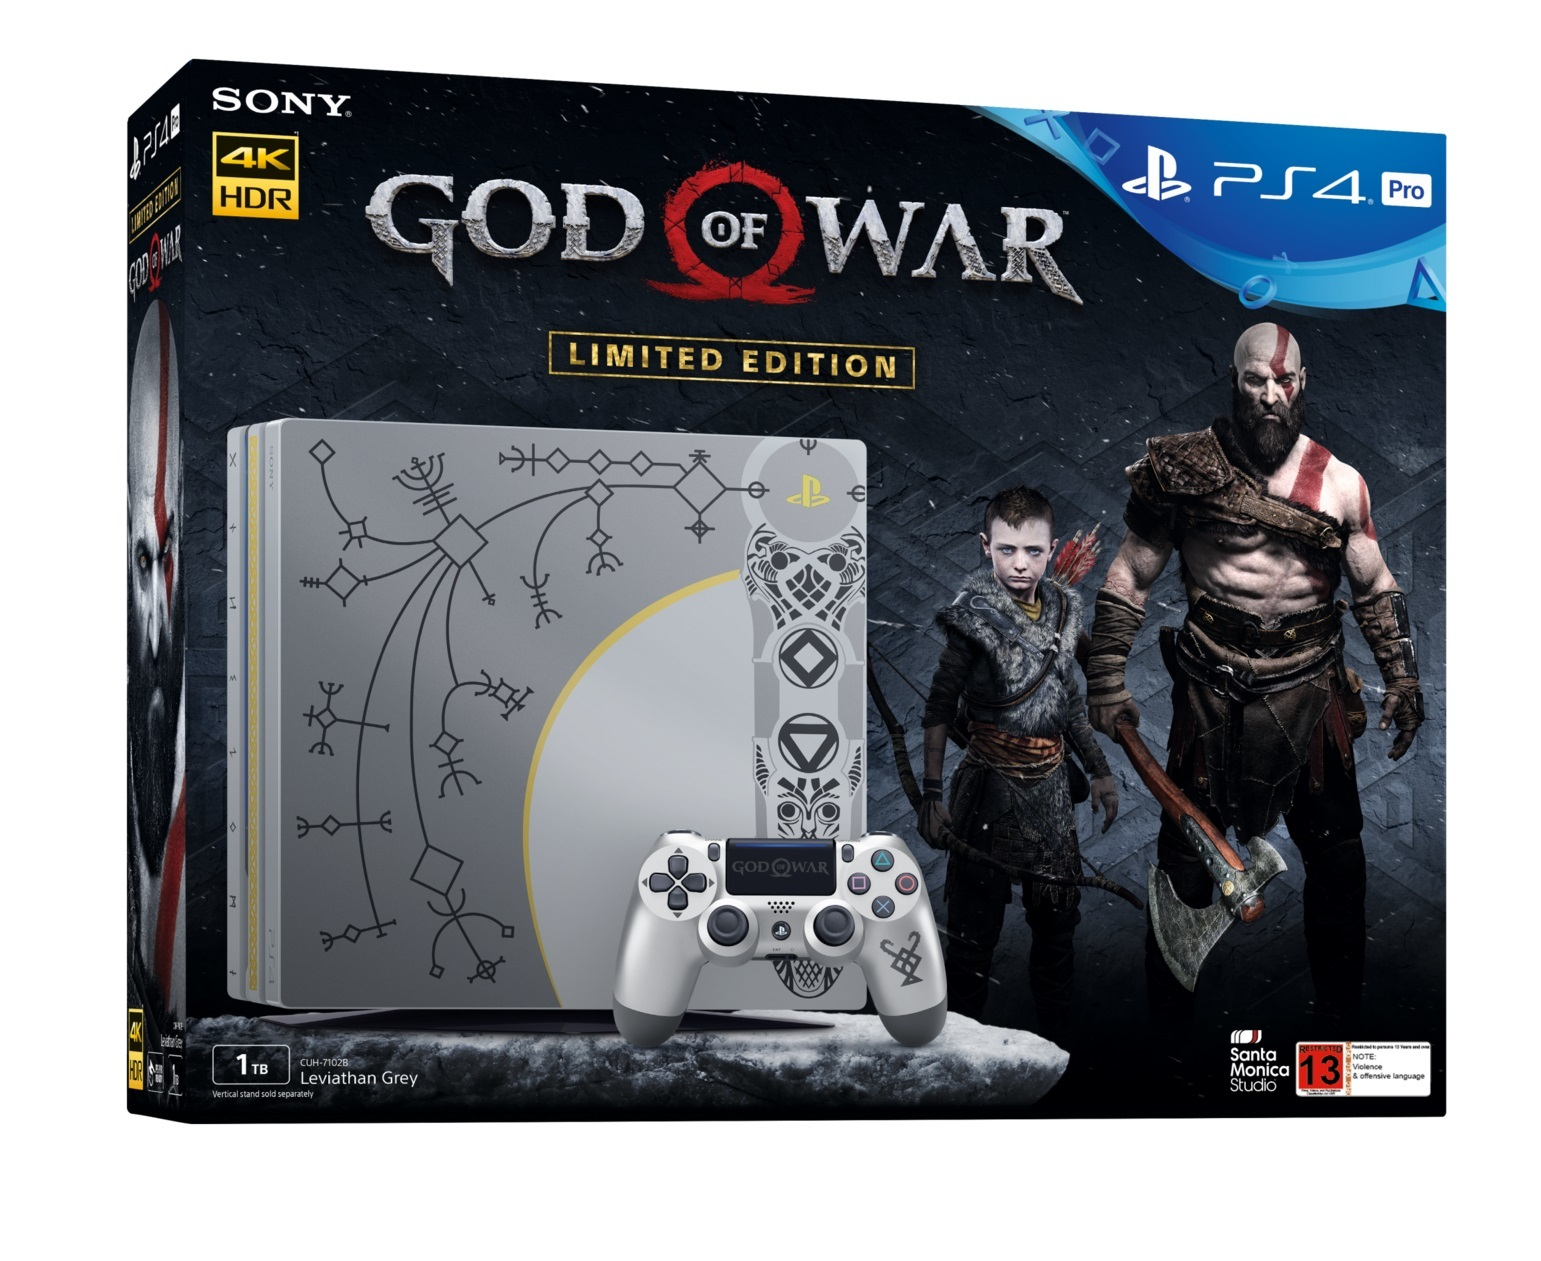 PS4 PRO 1TB God of War Limited Edition Console Bundle for PS4 image ... 478b91523d